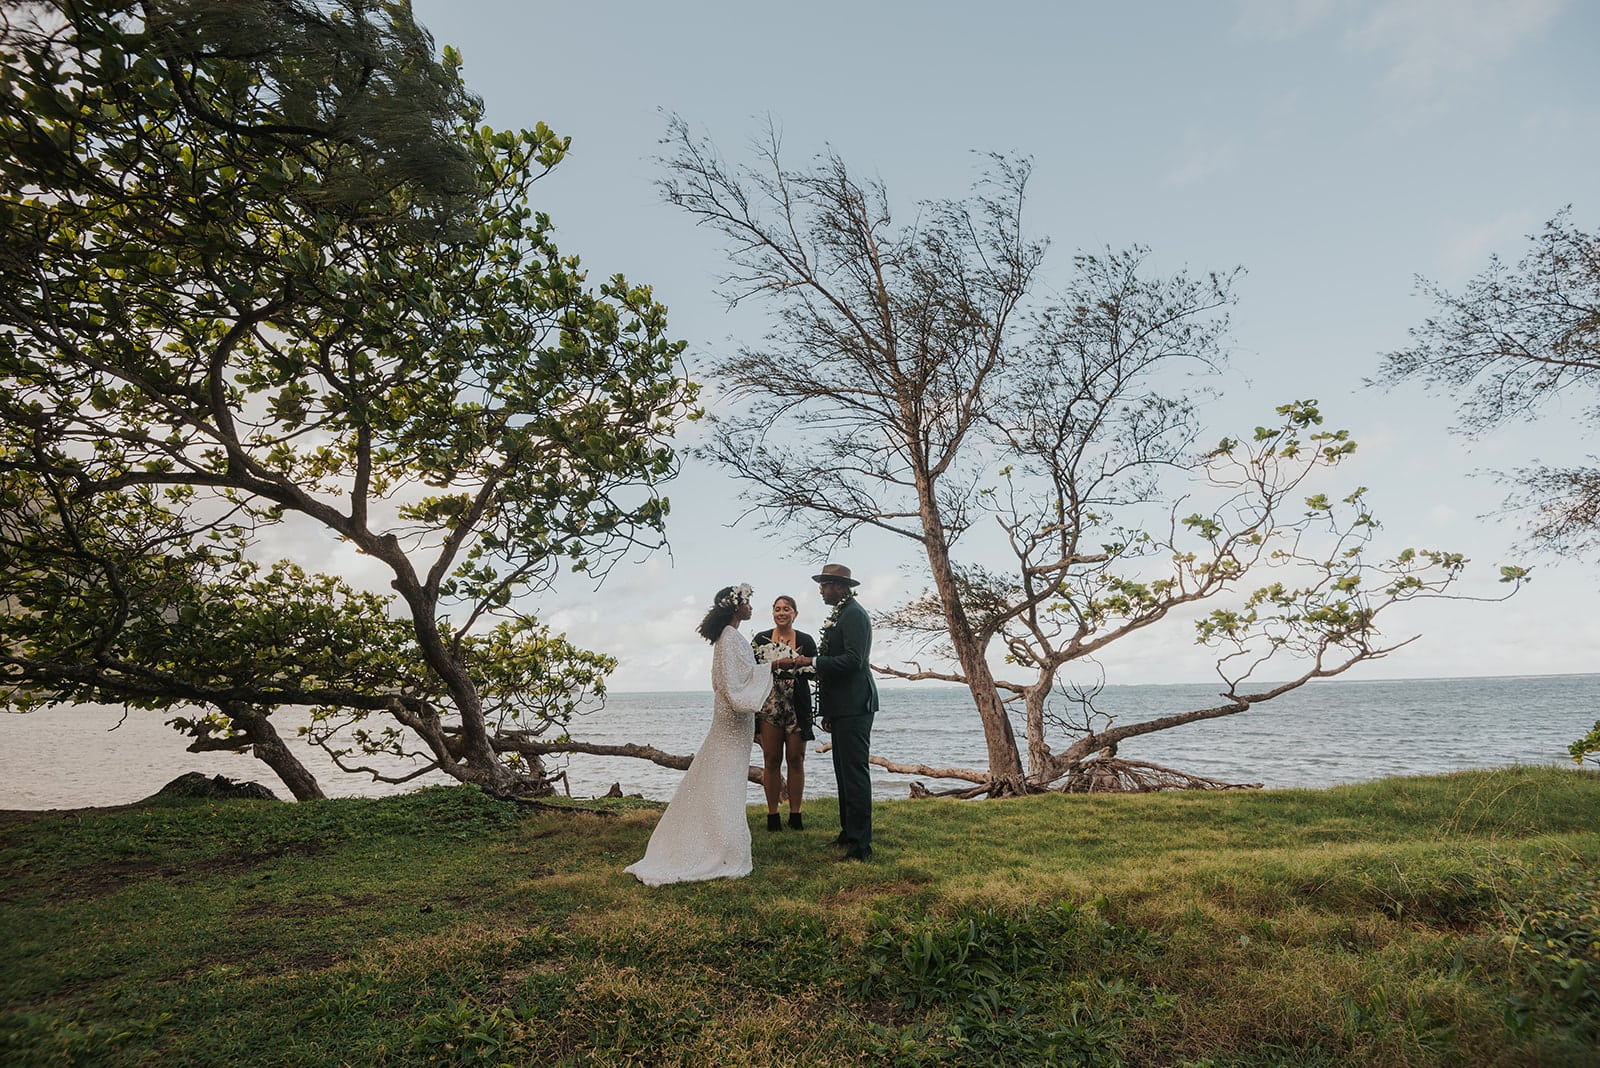 Couple saying vows in hawaii